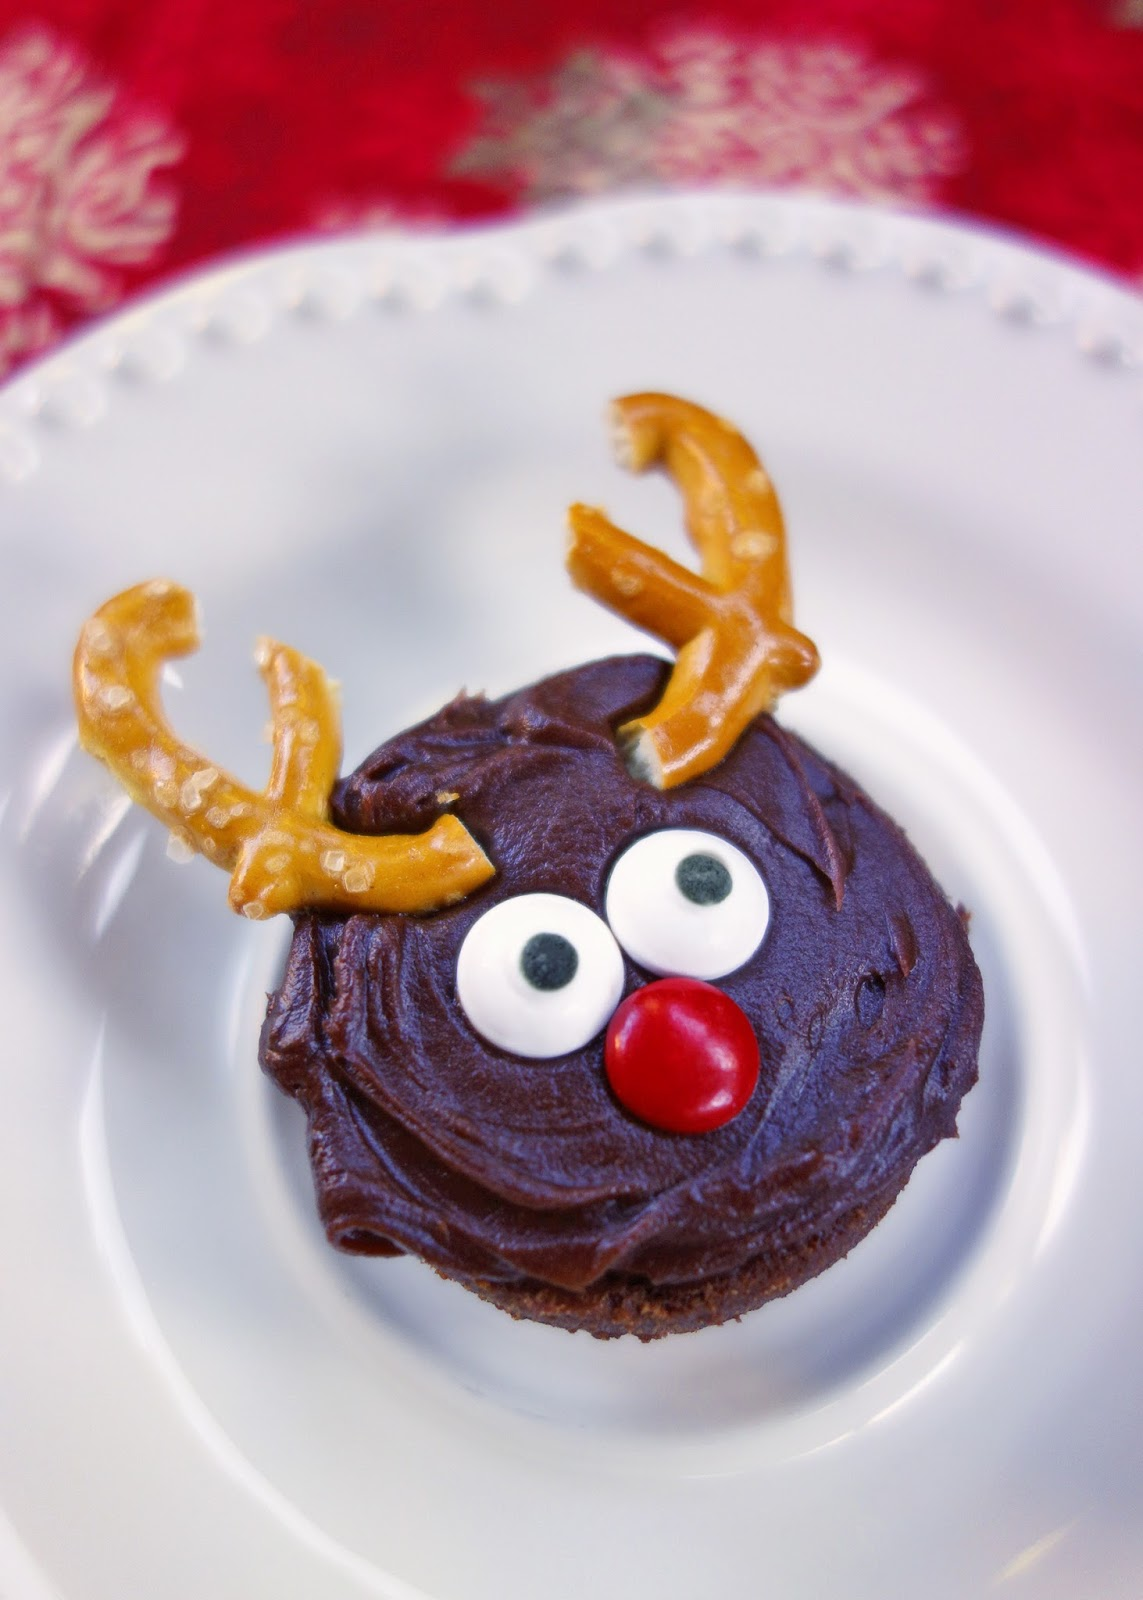 Reindeer brownie bites no bake plain chicken reindeer brownie bites no bake forumfinder Choice Image